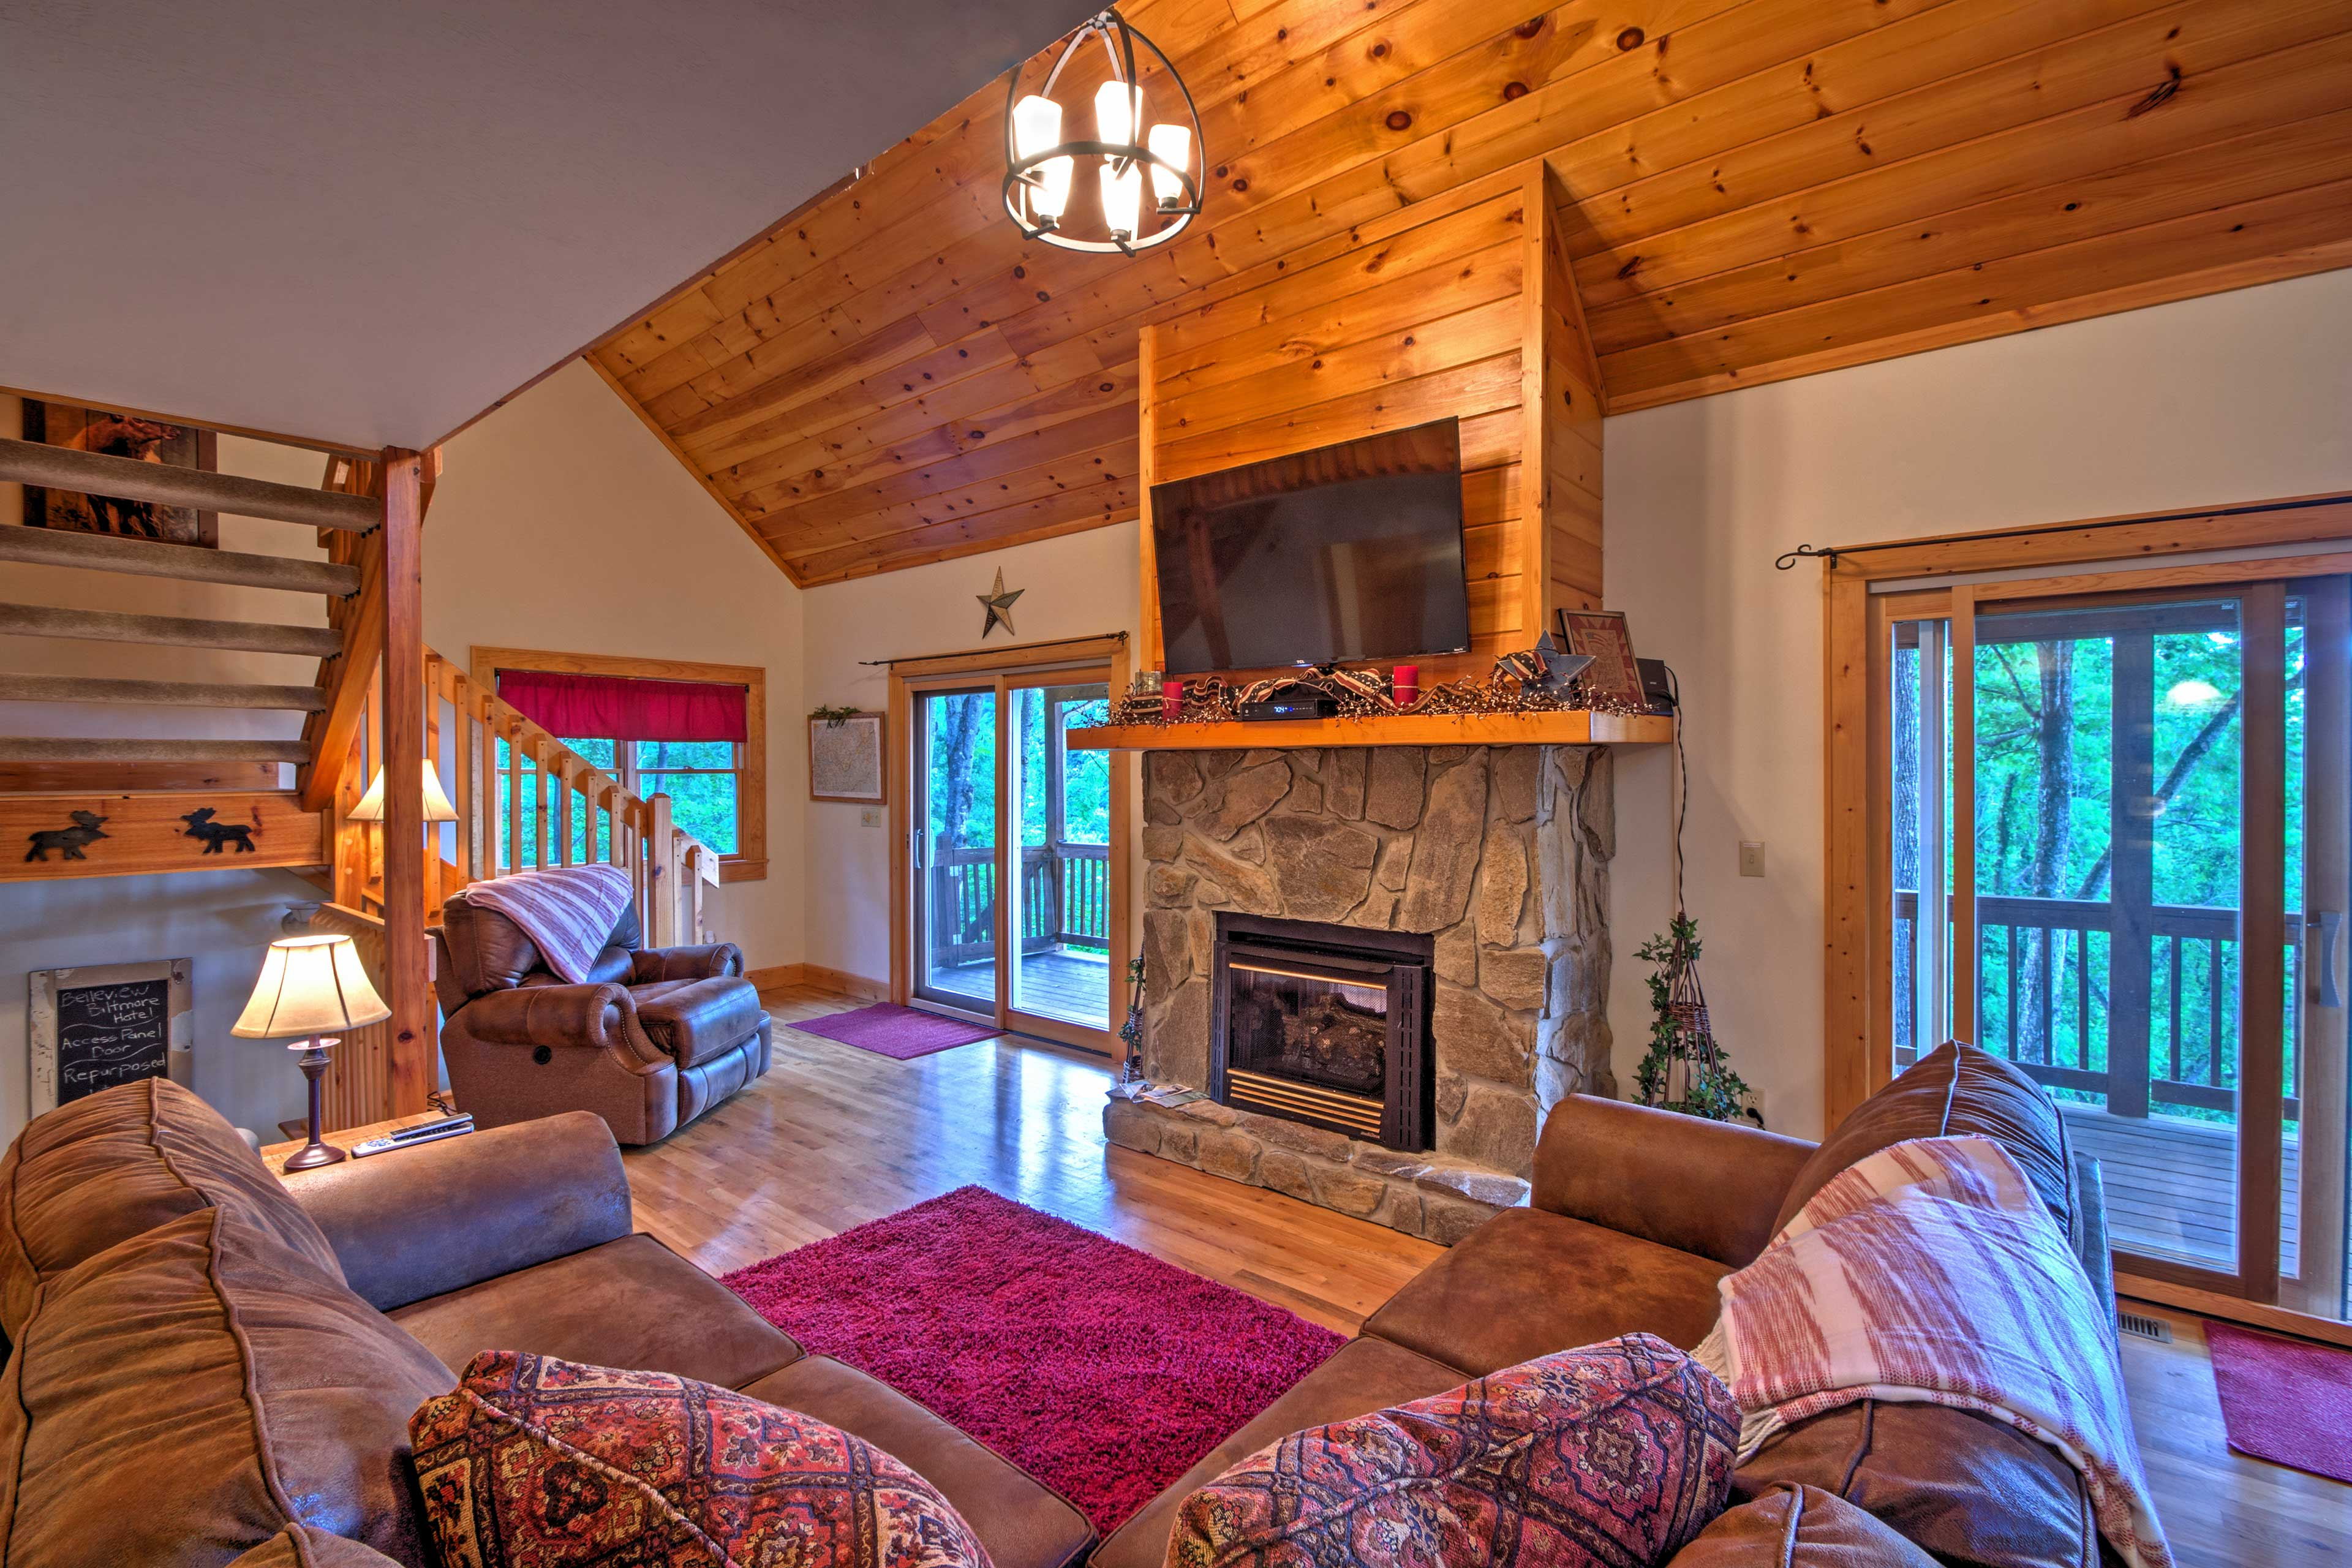 The living area features a stone propane insert fireplace and flat-screen TV.